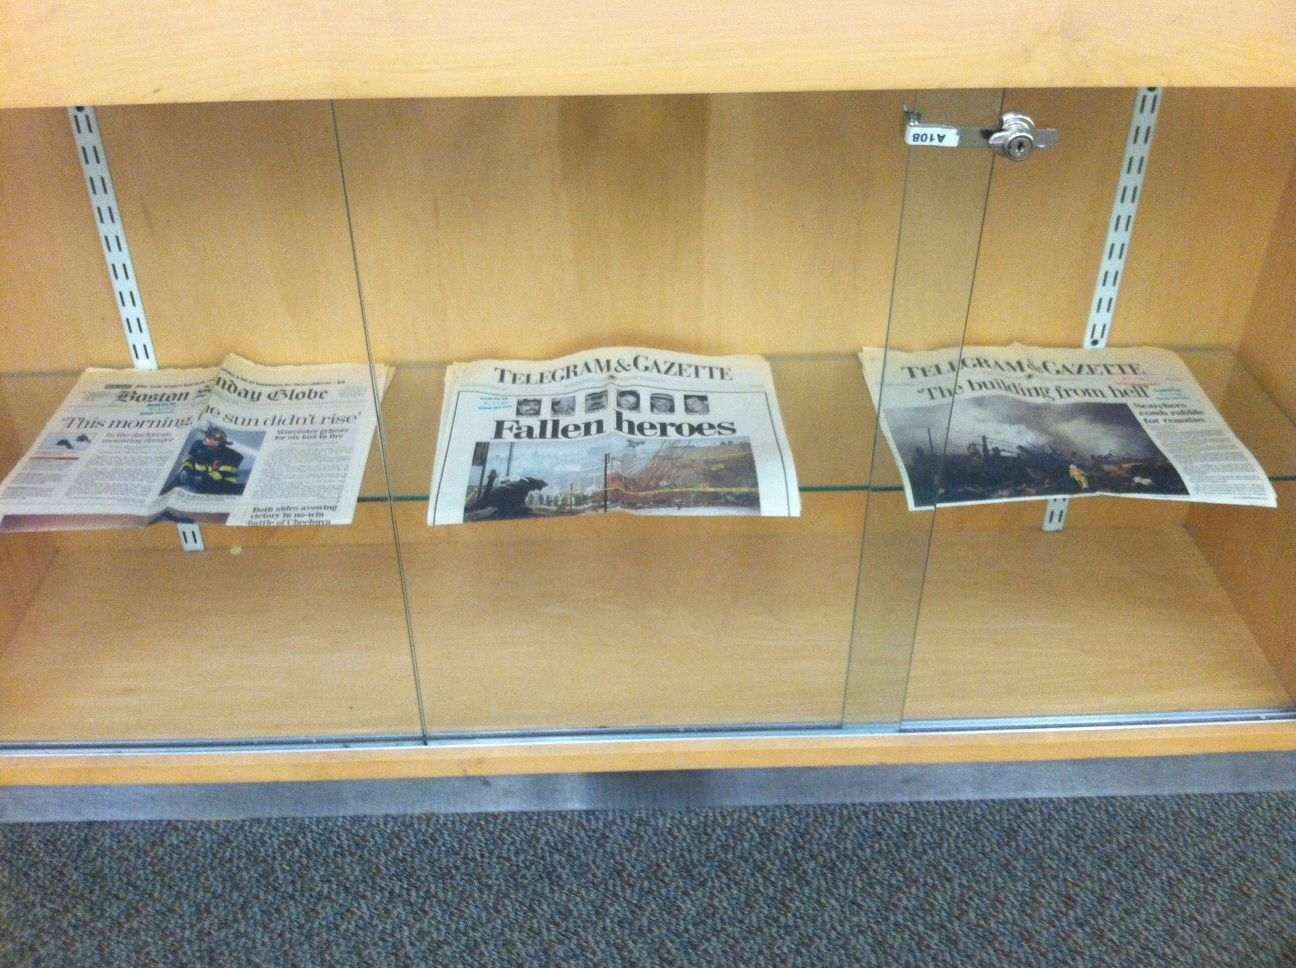 Three newspapers from the Boston Sunday Globe and the Worcester Telegram & Gazette